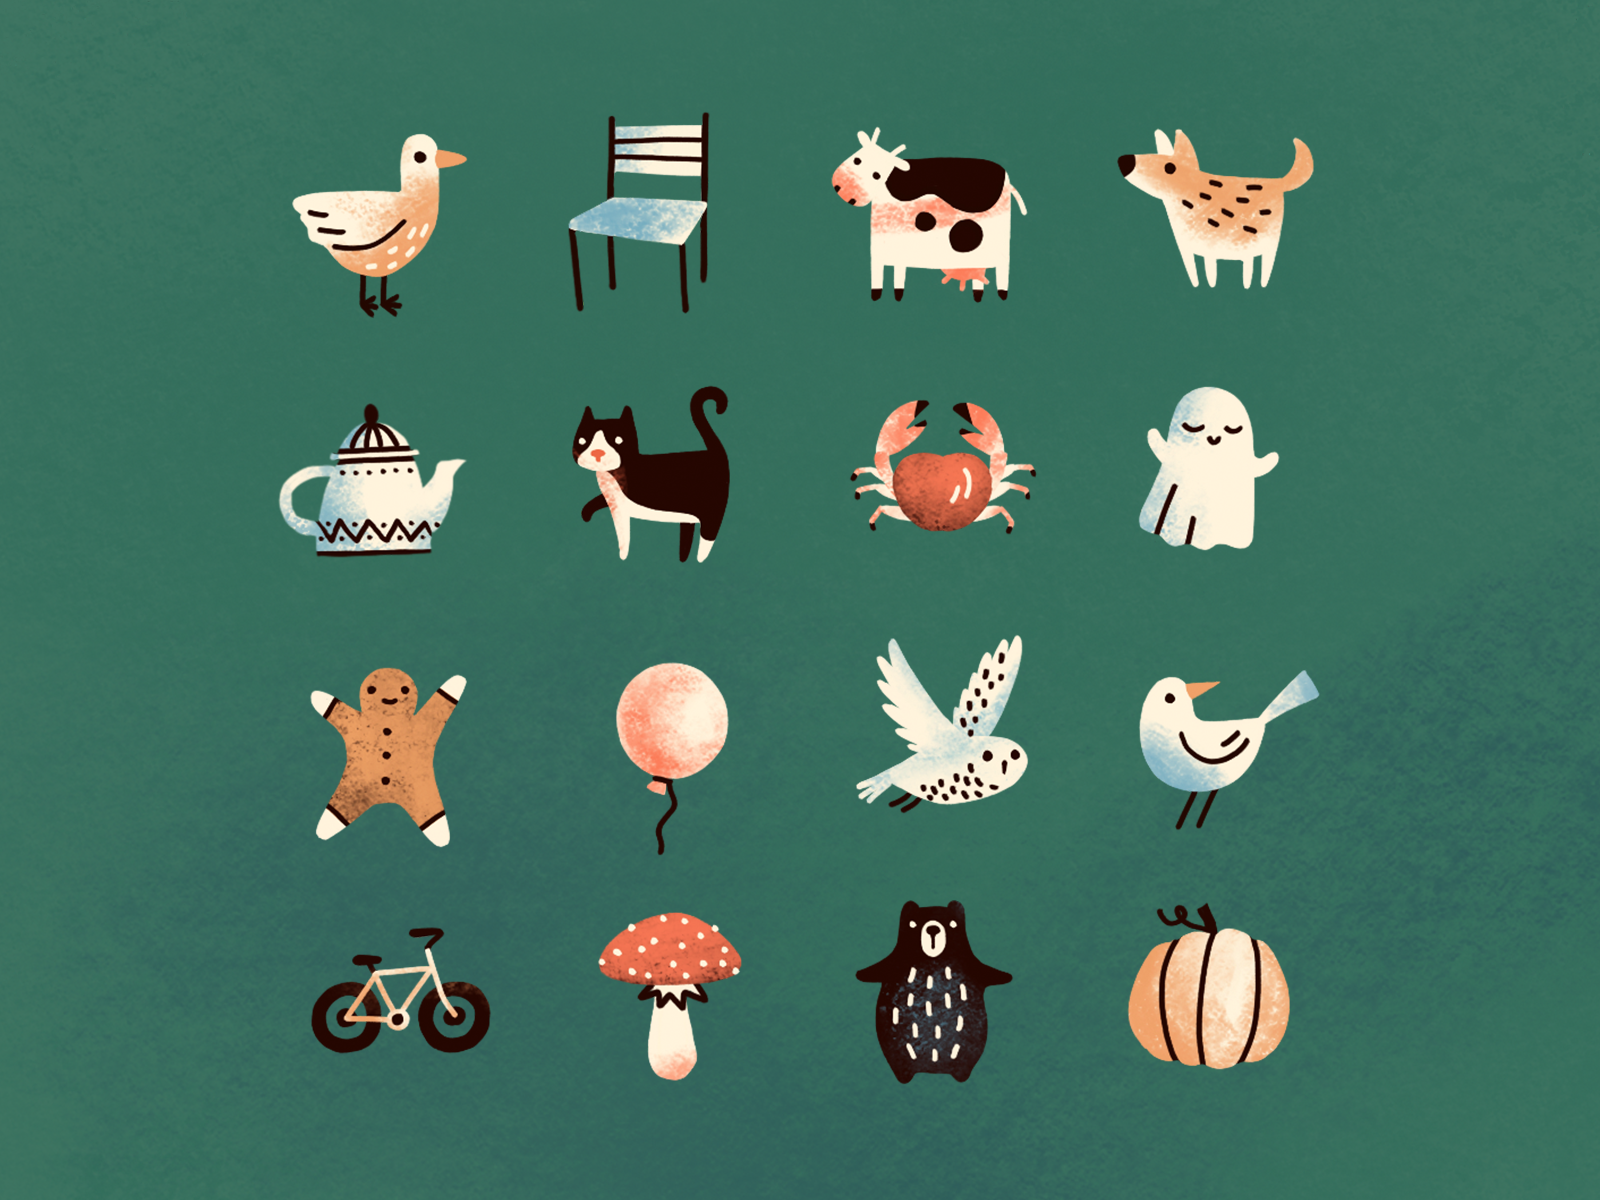 A bunch of game assets